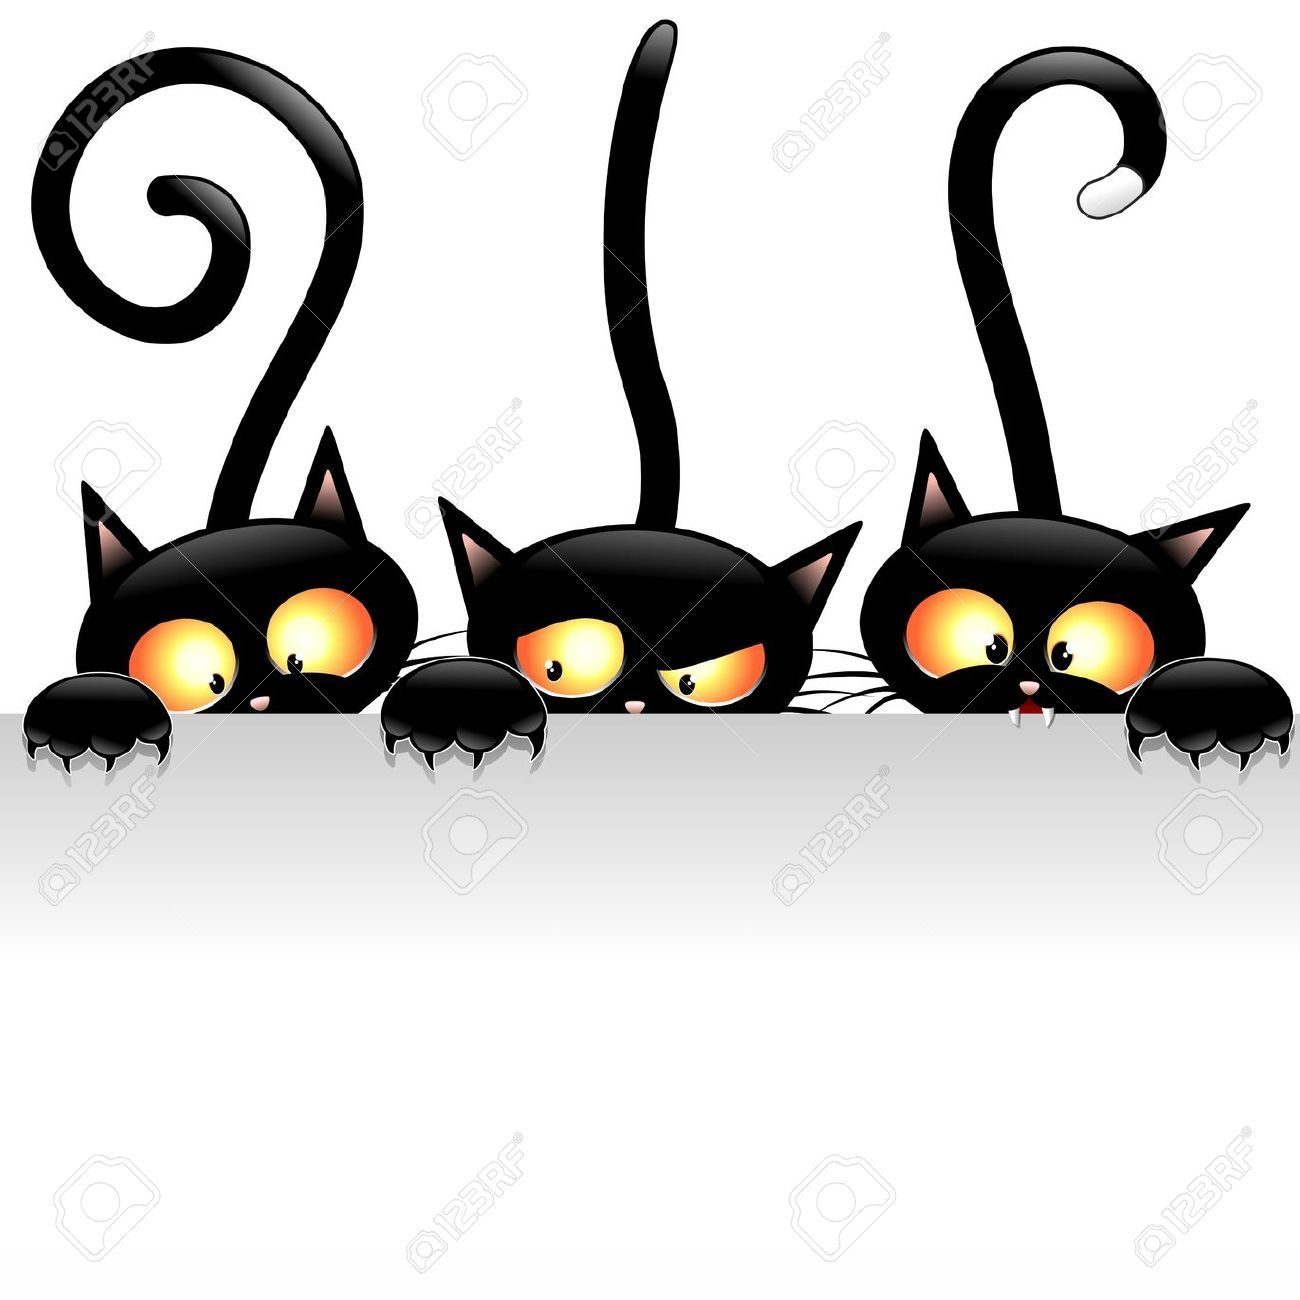 Funny Black Cats Cartoon with White Panel · Chats NoirsChats DrôlesPattes